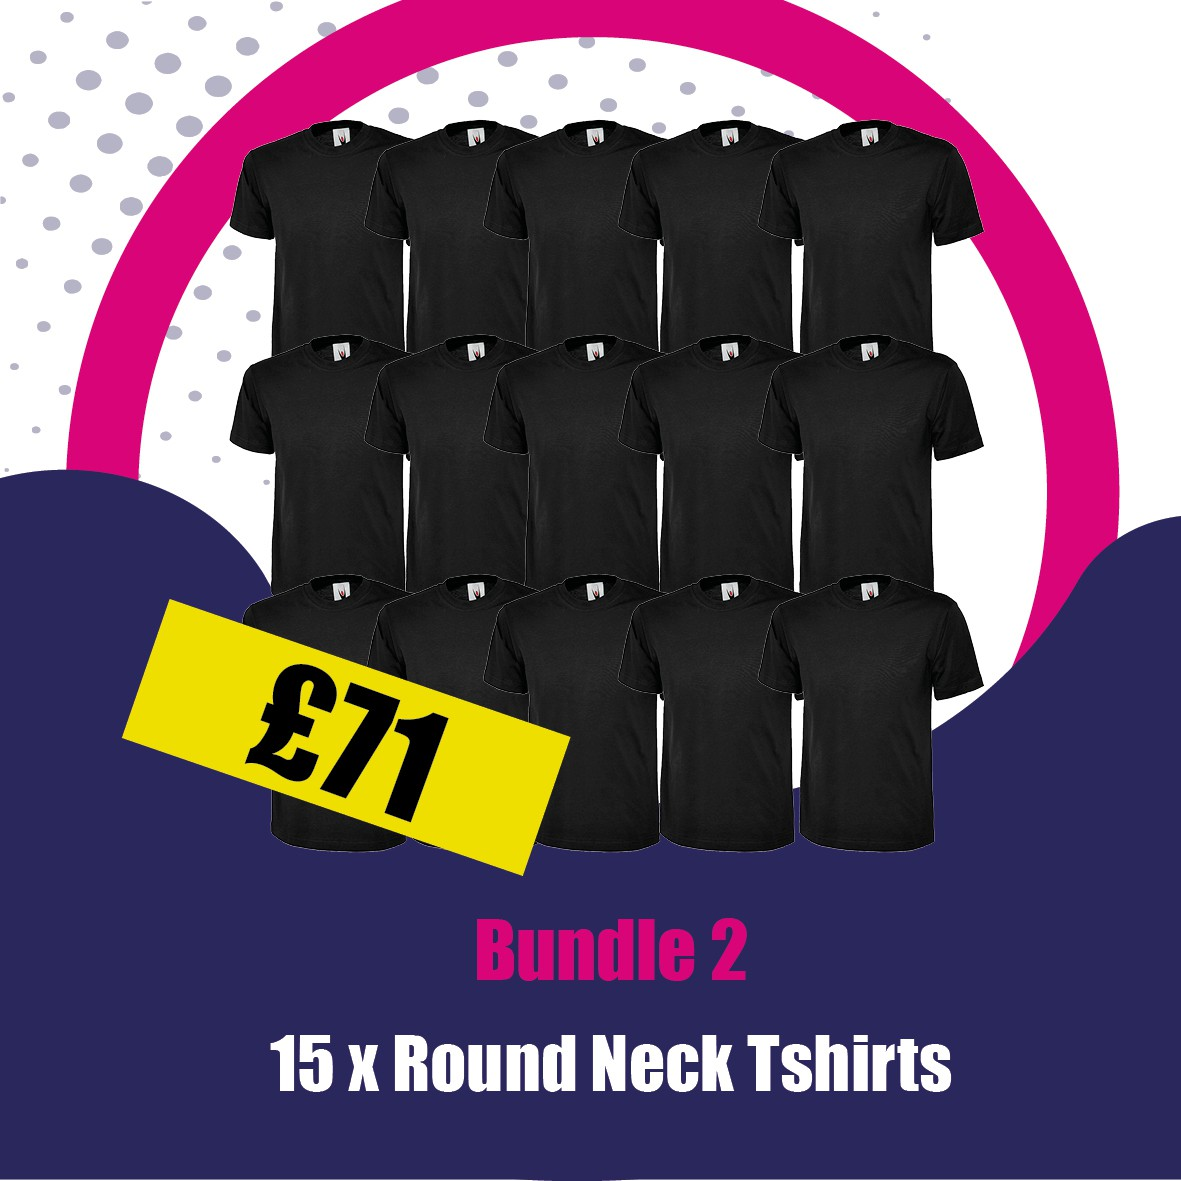 15 X Round Neck Tshirts with printed logo to Left Breast